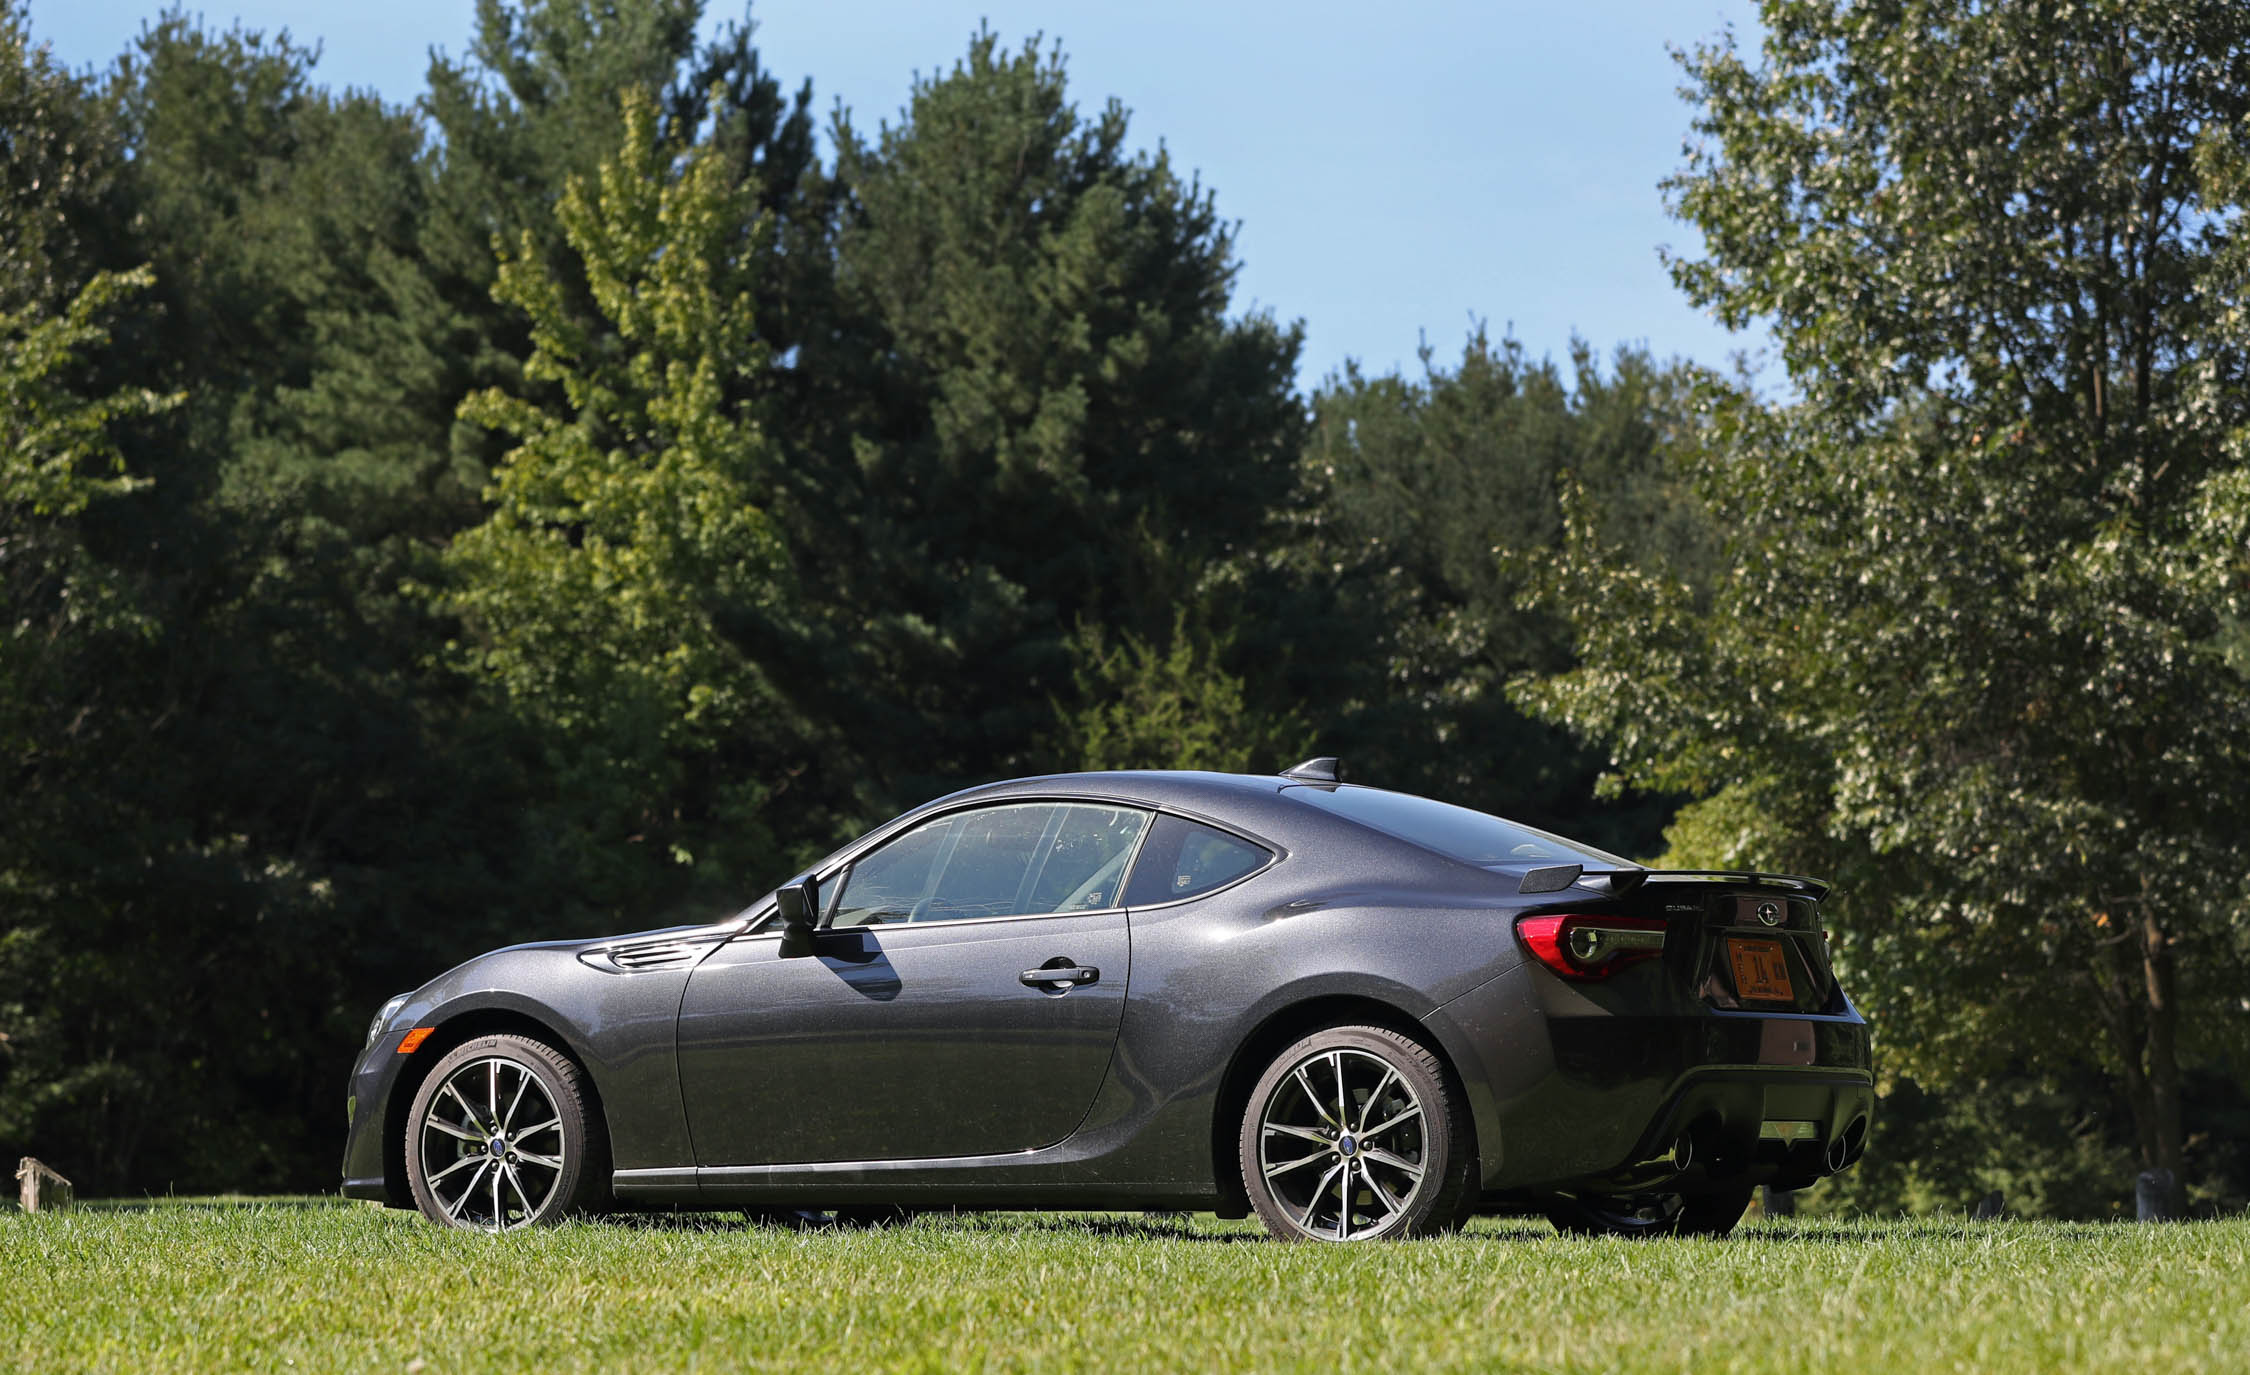 2017 Subaru BRZ Exterior Side And Rear (Photo 9 of 27)